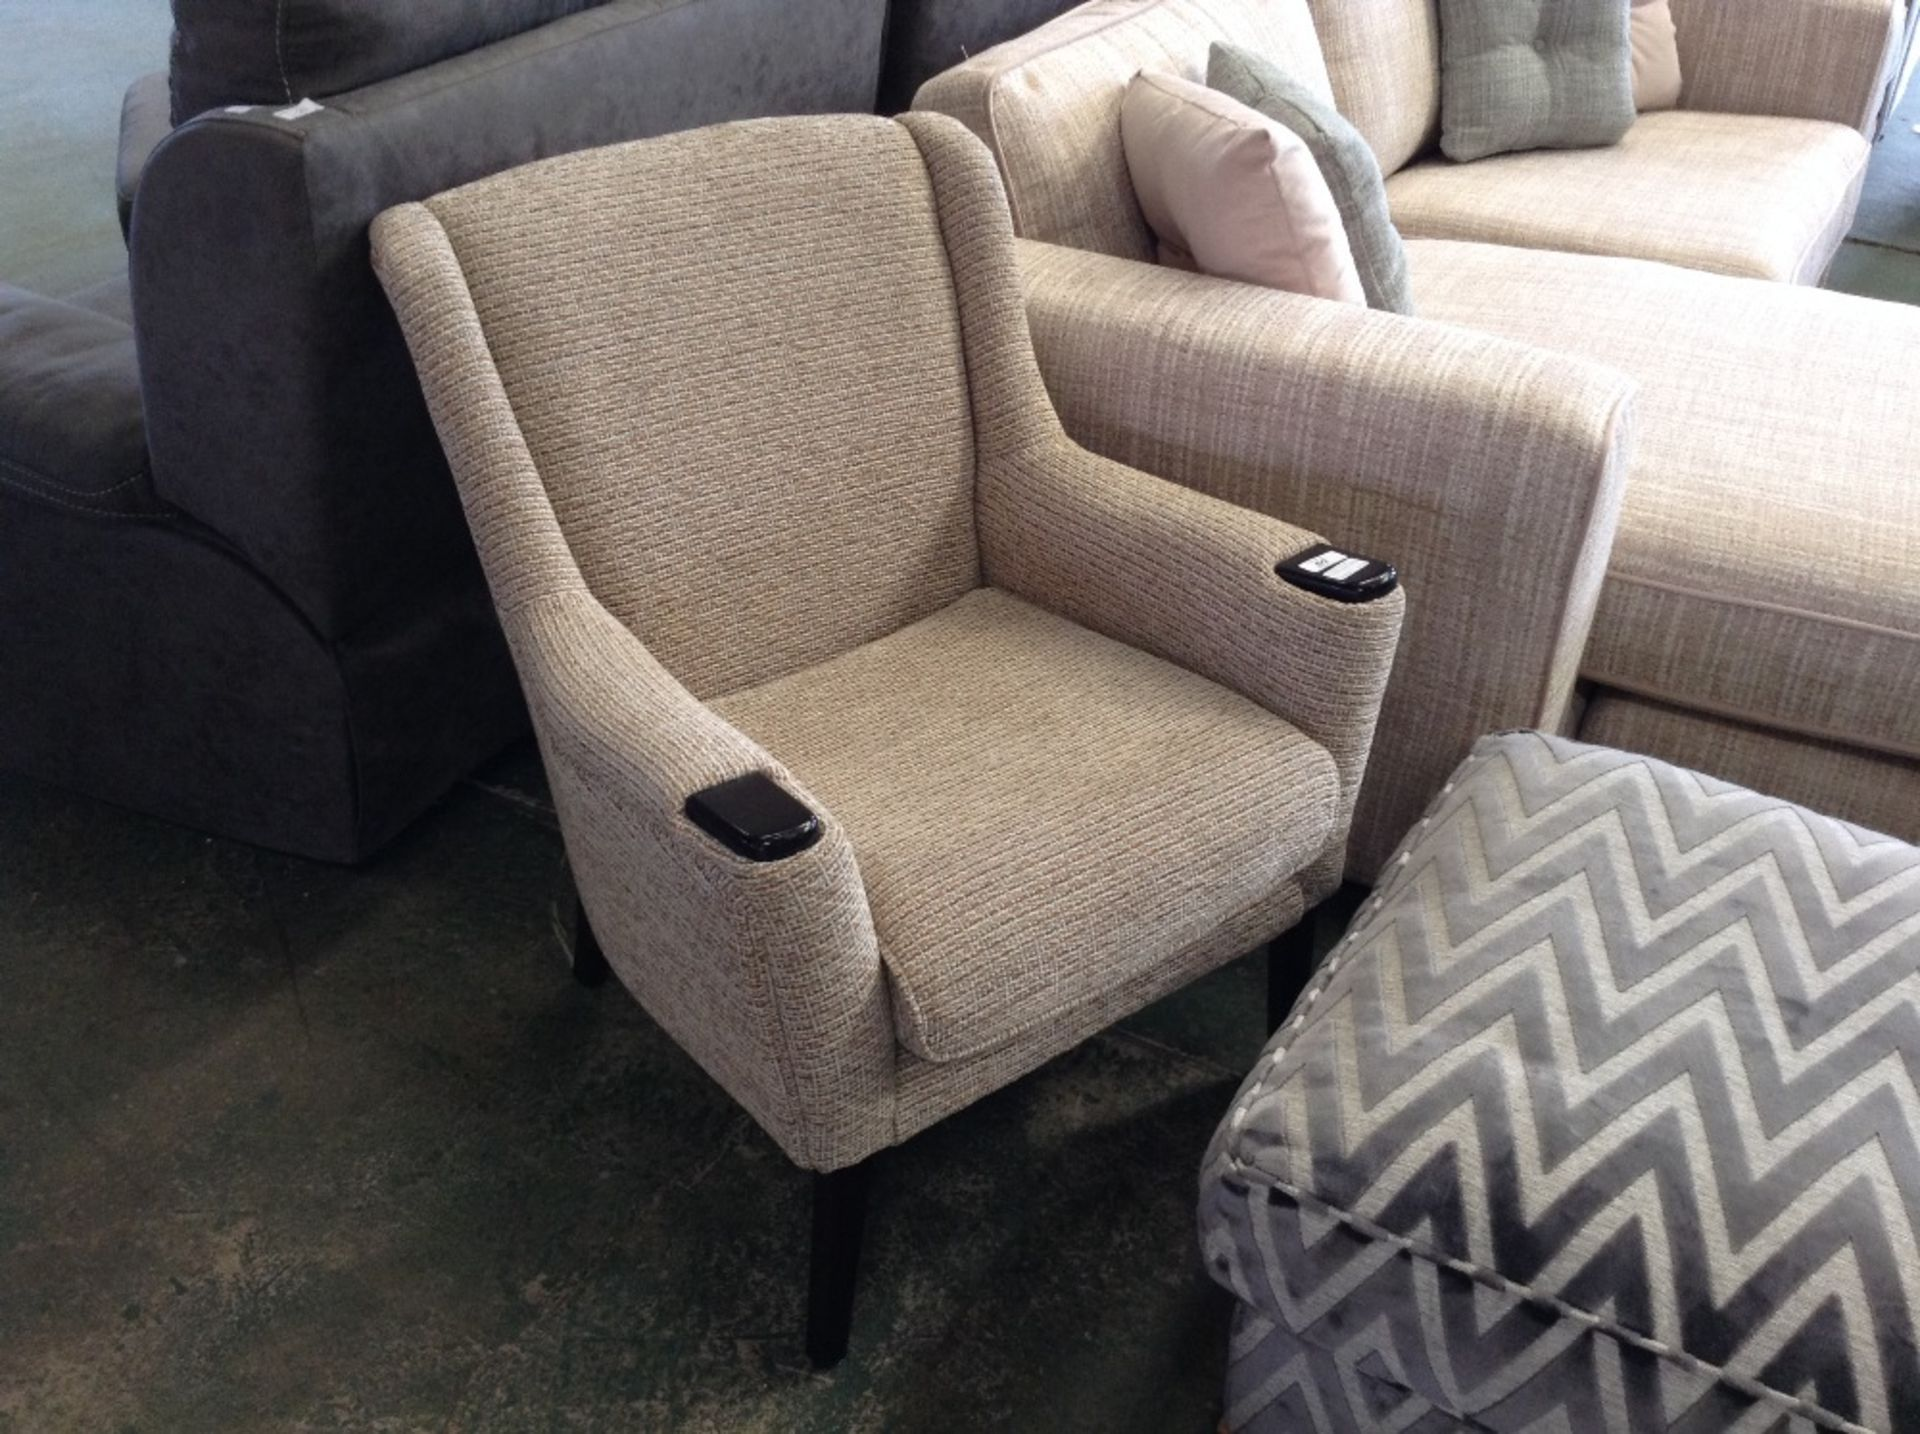 Lotto 60 - BISCUIT BED ROOM CHAIR (TROO1714-WOO481585)